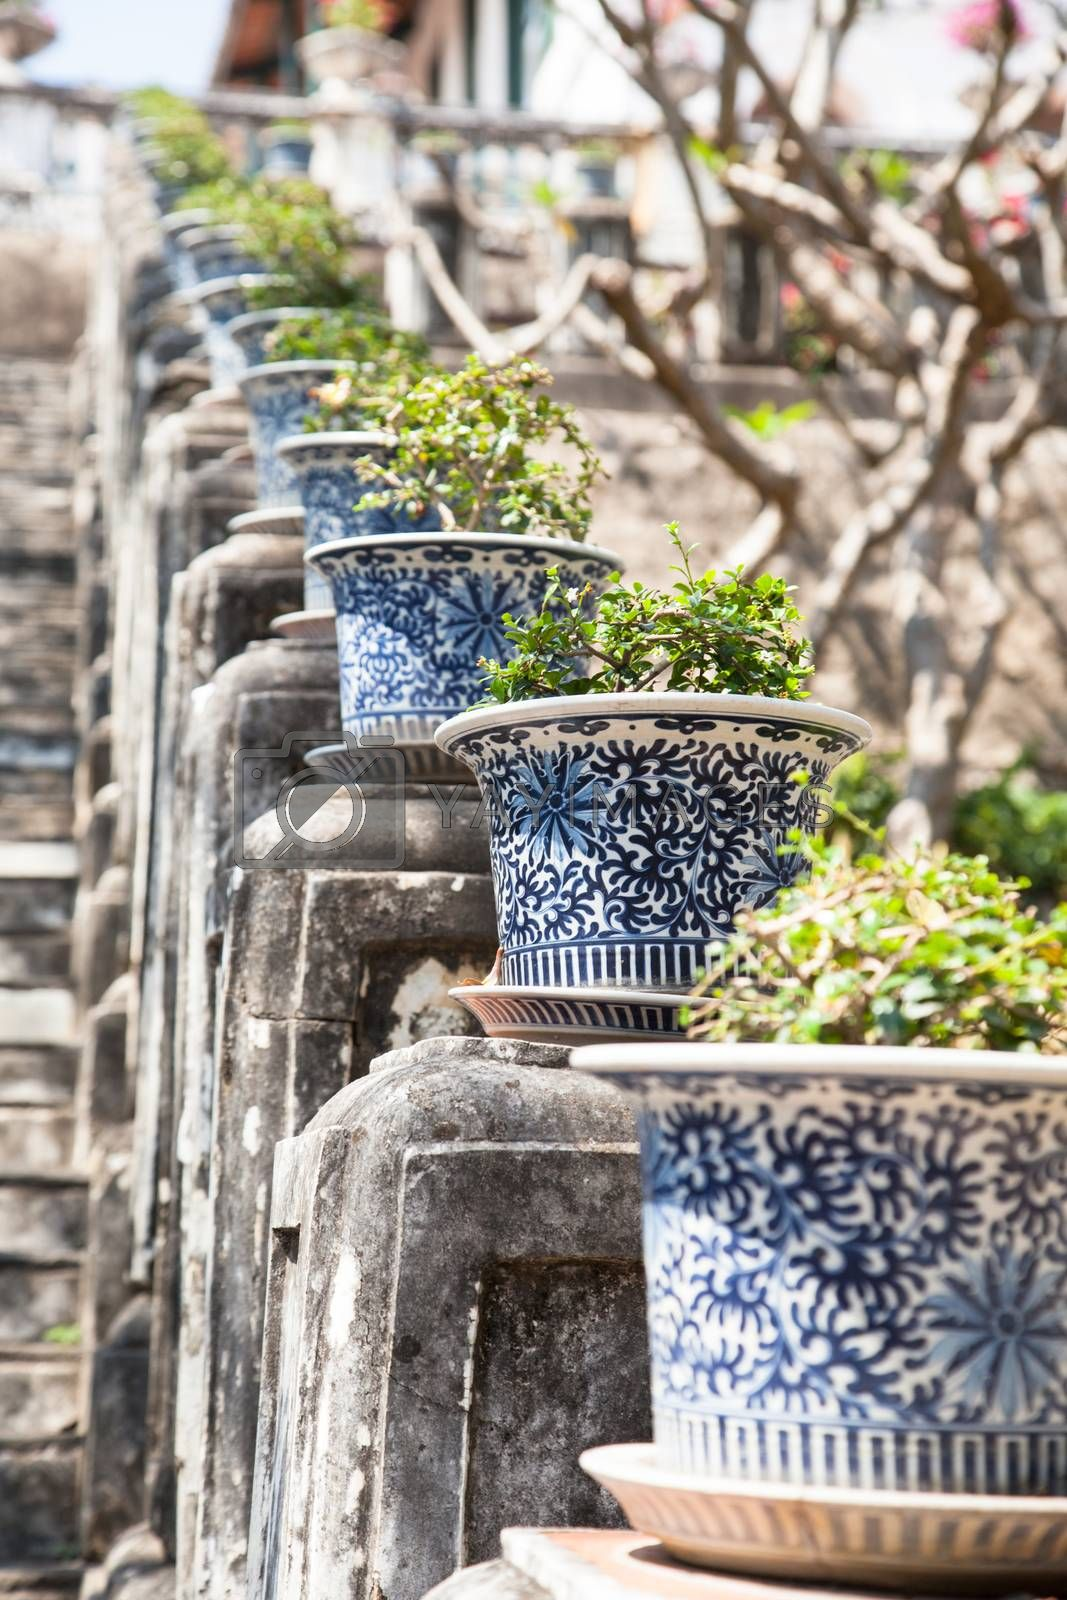 Potted plants on a railing in a park along the sidewalks.